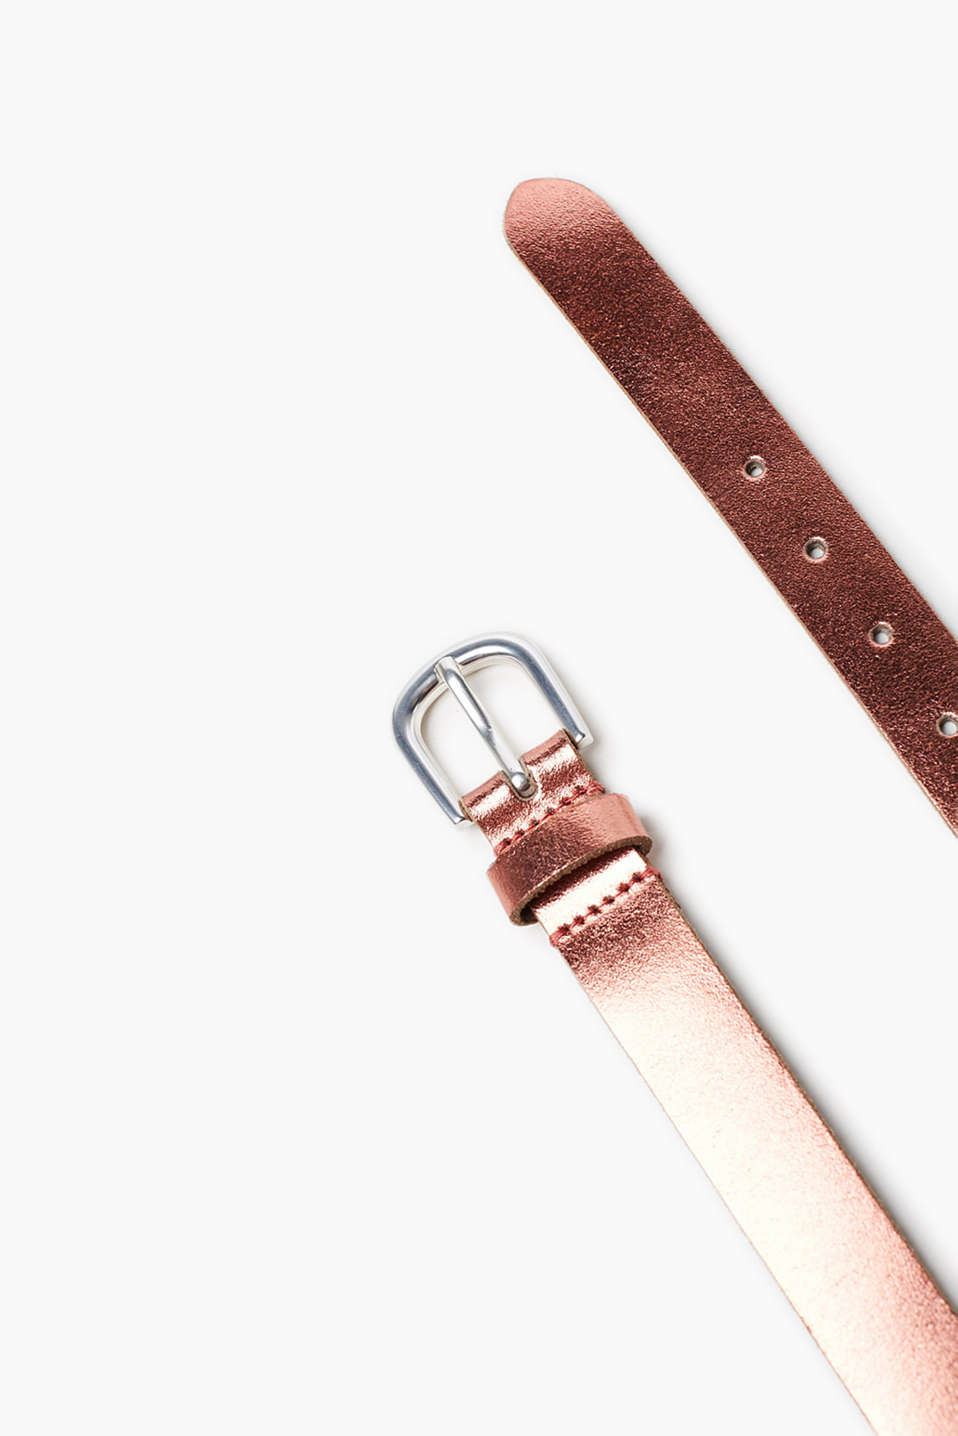 Smooth buffalo leather belt with polished metal buckle